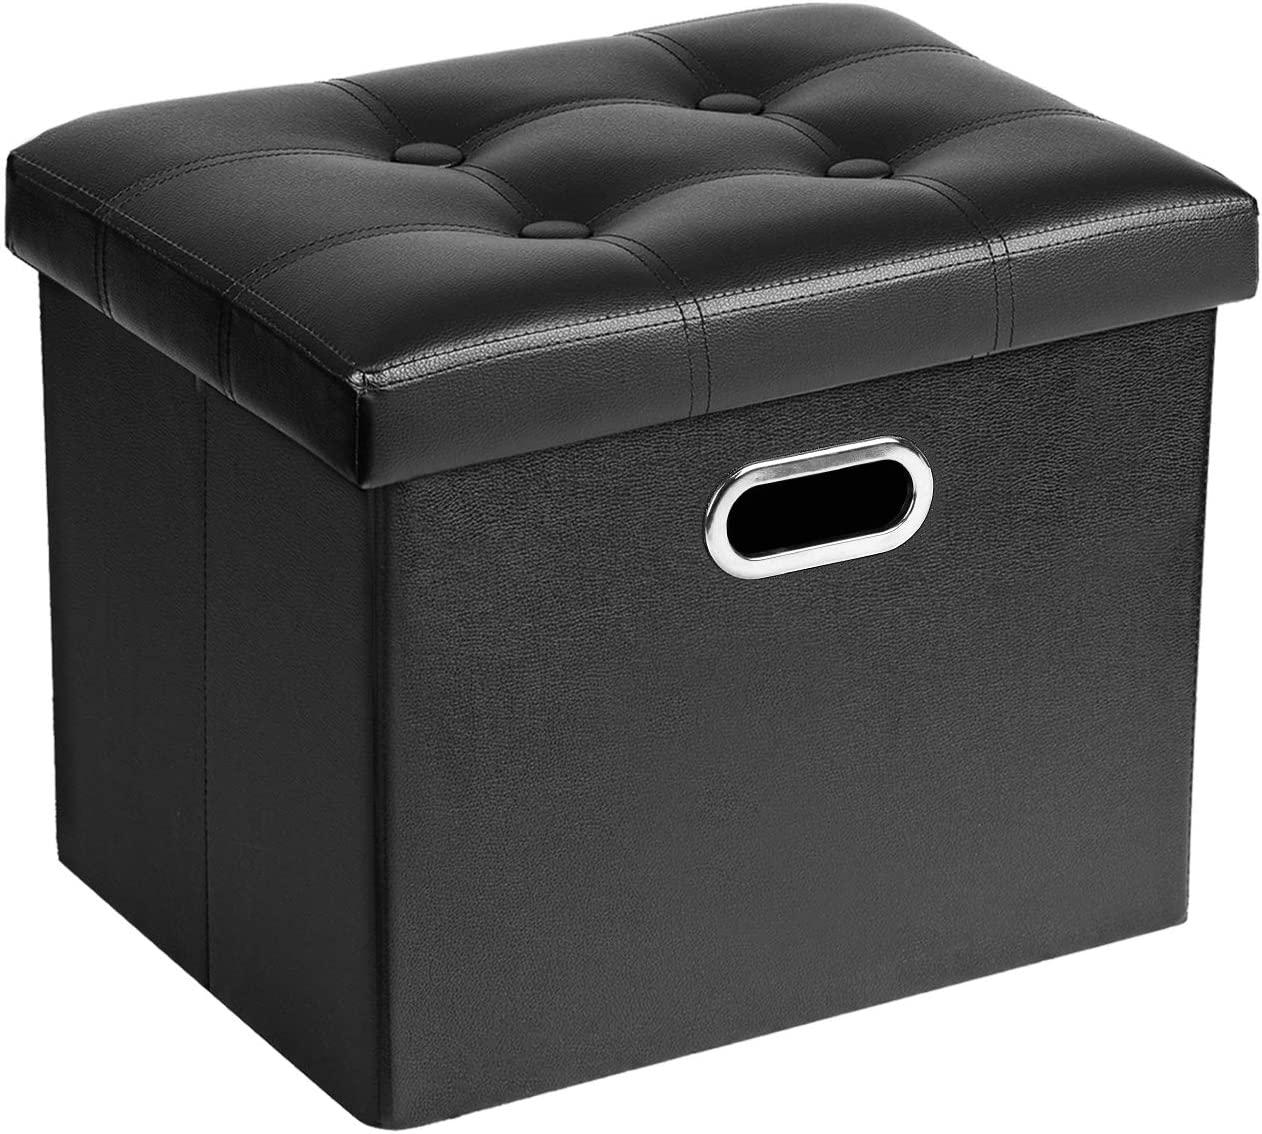 Cosyland Ottoman with Storage Folding Leather Ottoman Footrest Foot Stool Black Ottoman for Room Small Rectangle Collapsible Bench Furniture with Handles Lid Toy Chest 17x13x13in